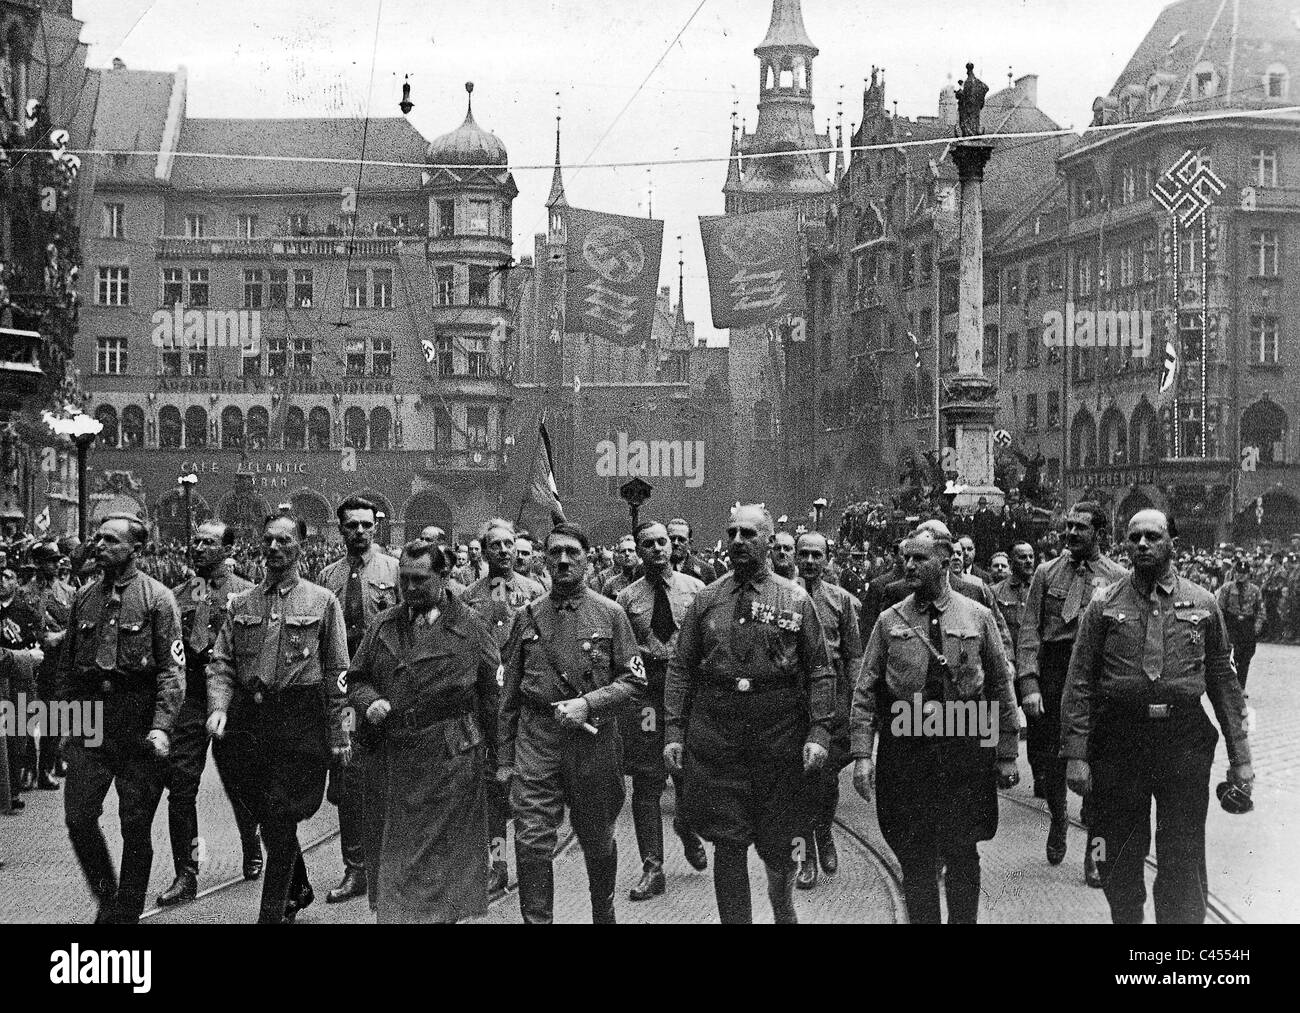 hitler and the nazi party Spectacle was like oxygen for the nazis, and heinrich hoffmann was instrumental in staging hitler's growing pageant of power hoffmann, who joined the party in 1920 and became hitler's personal photographer and confidant, was charged with choreographing the regime's propaganda carnivals and selling them to a wounded german public.